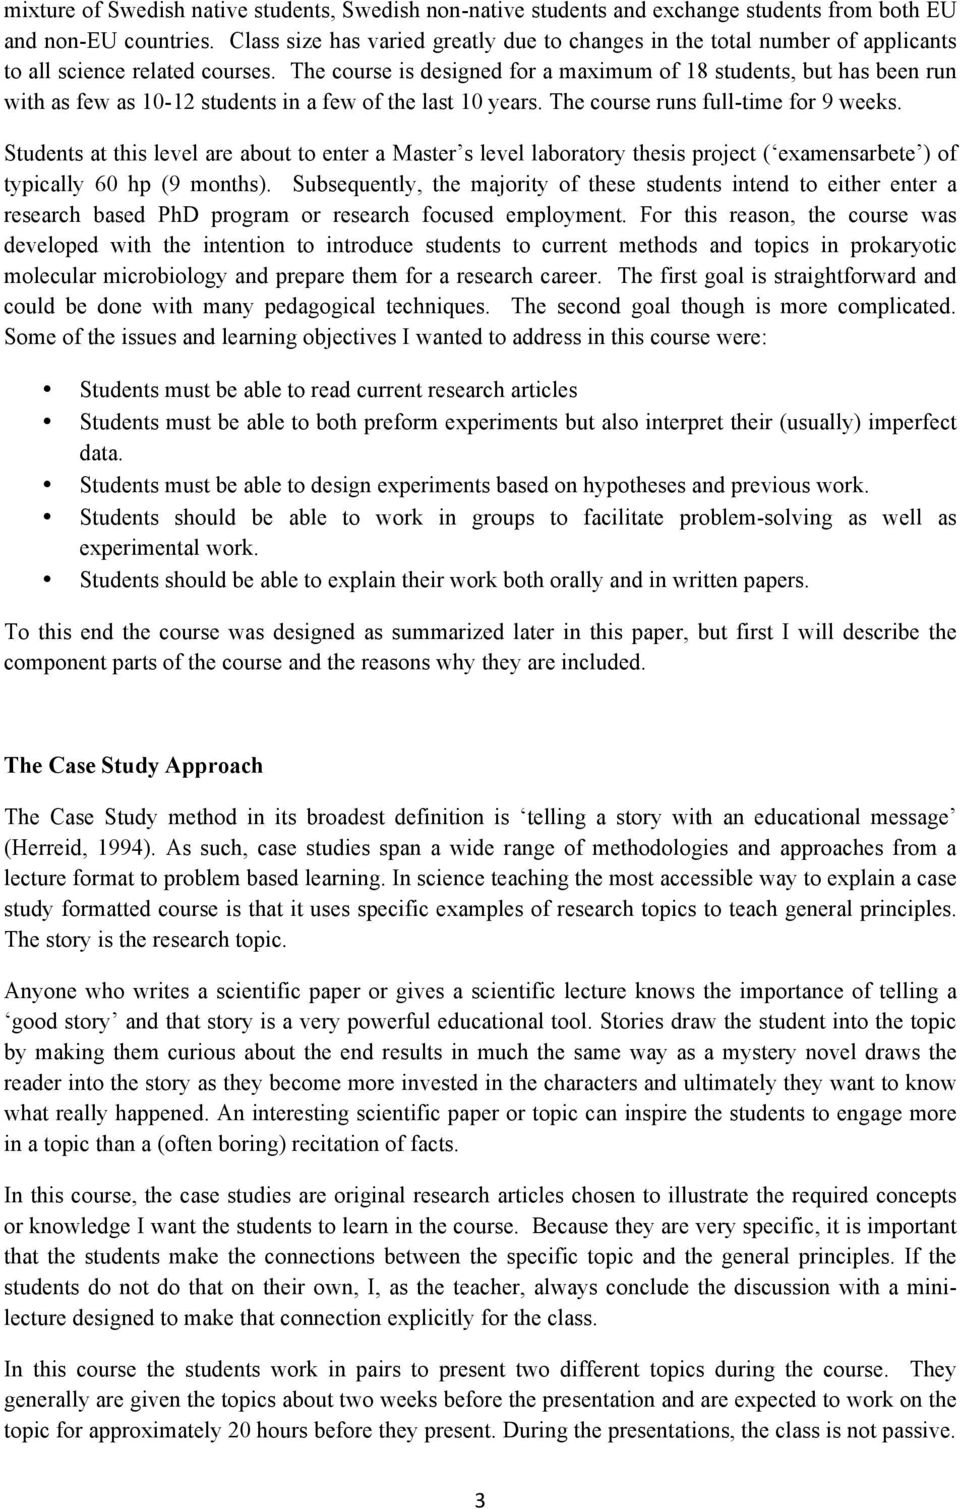 research study about working students